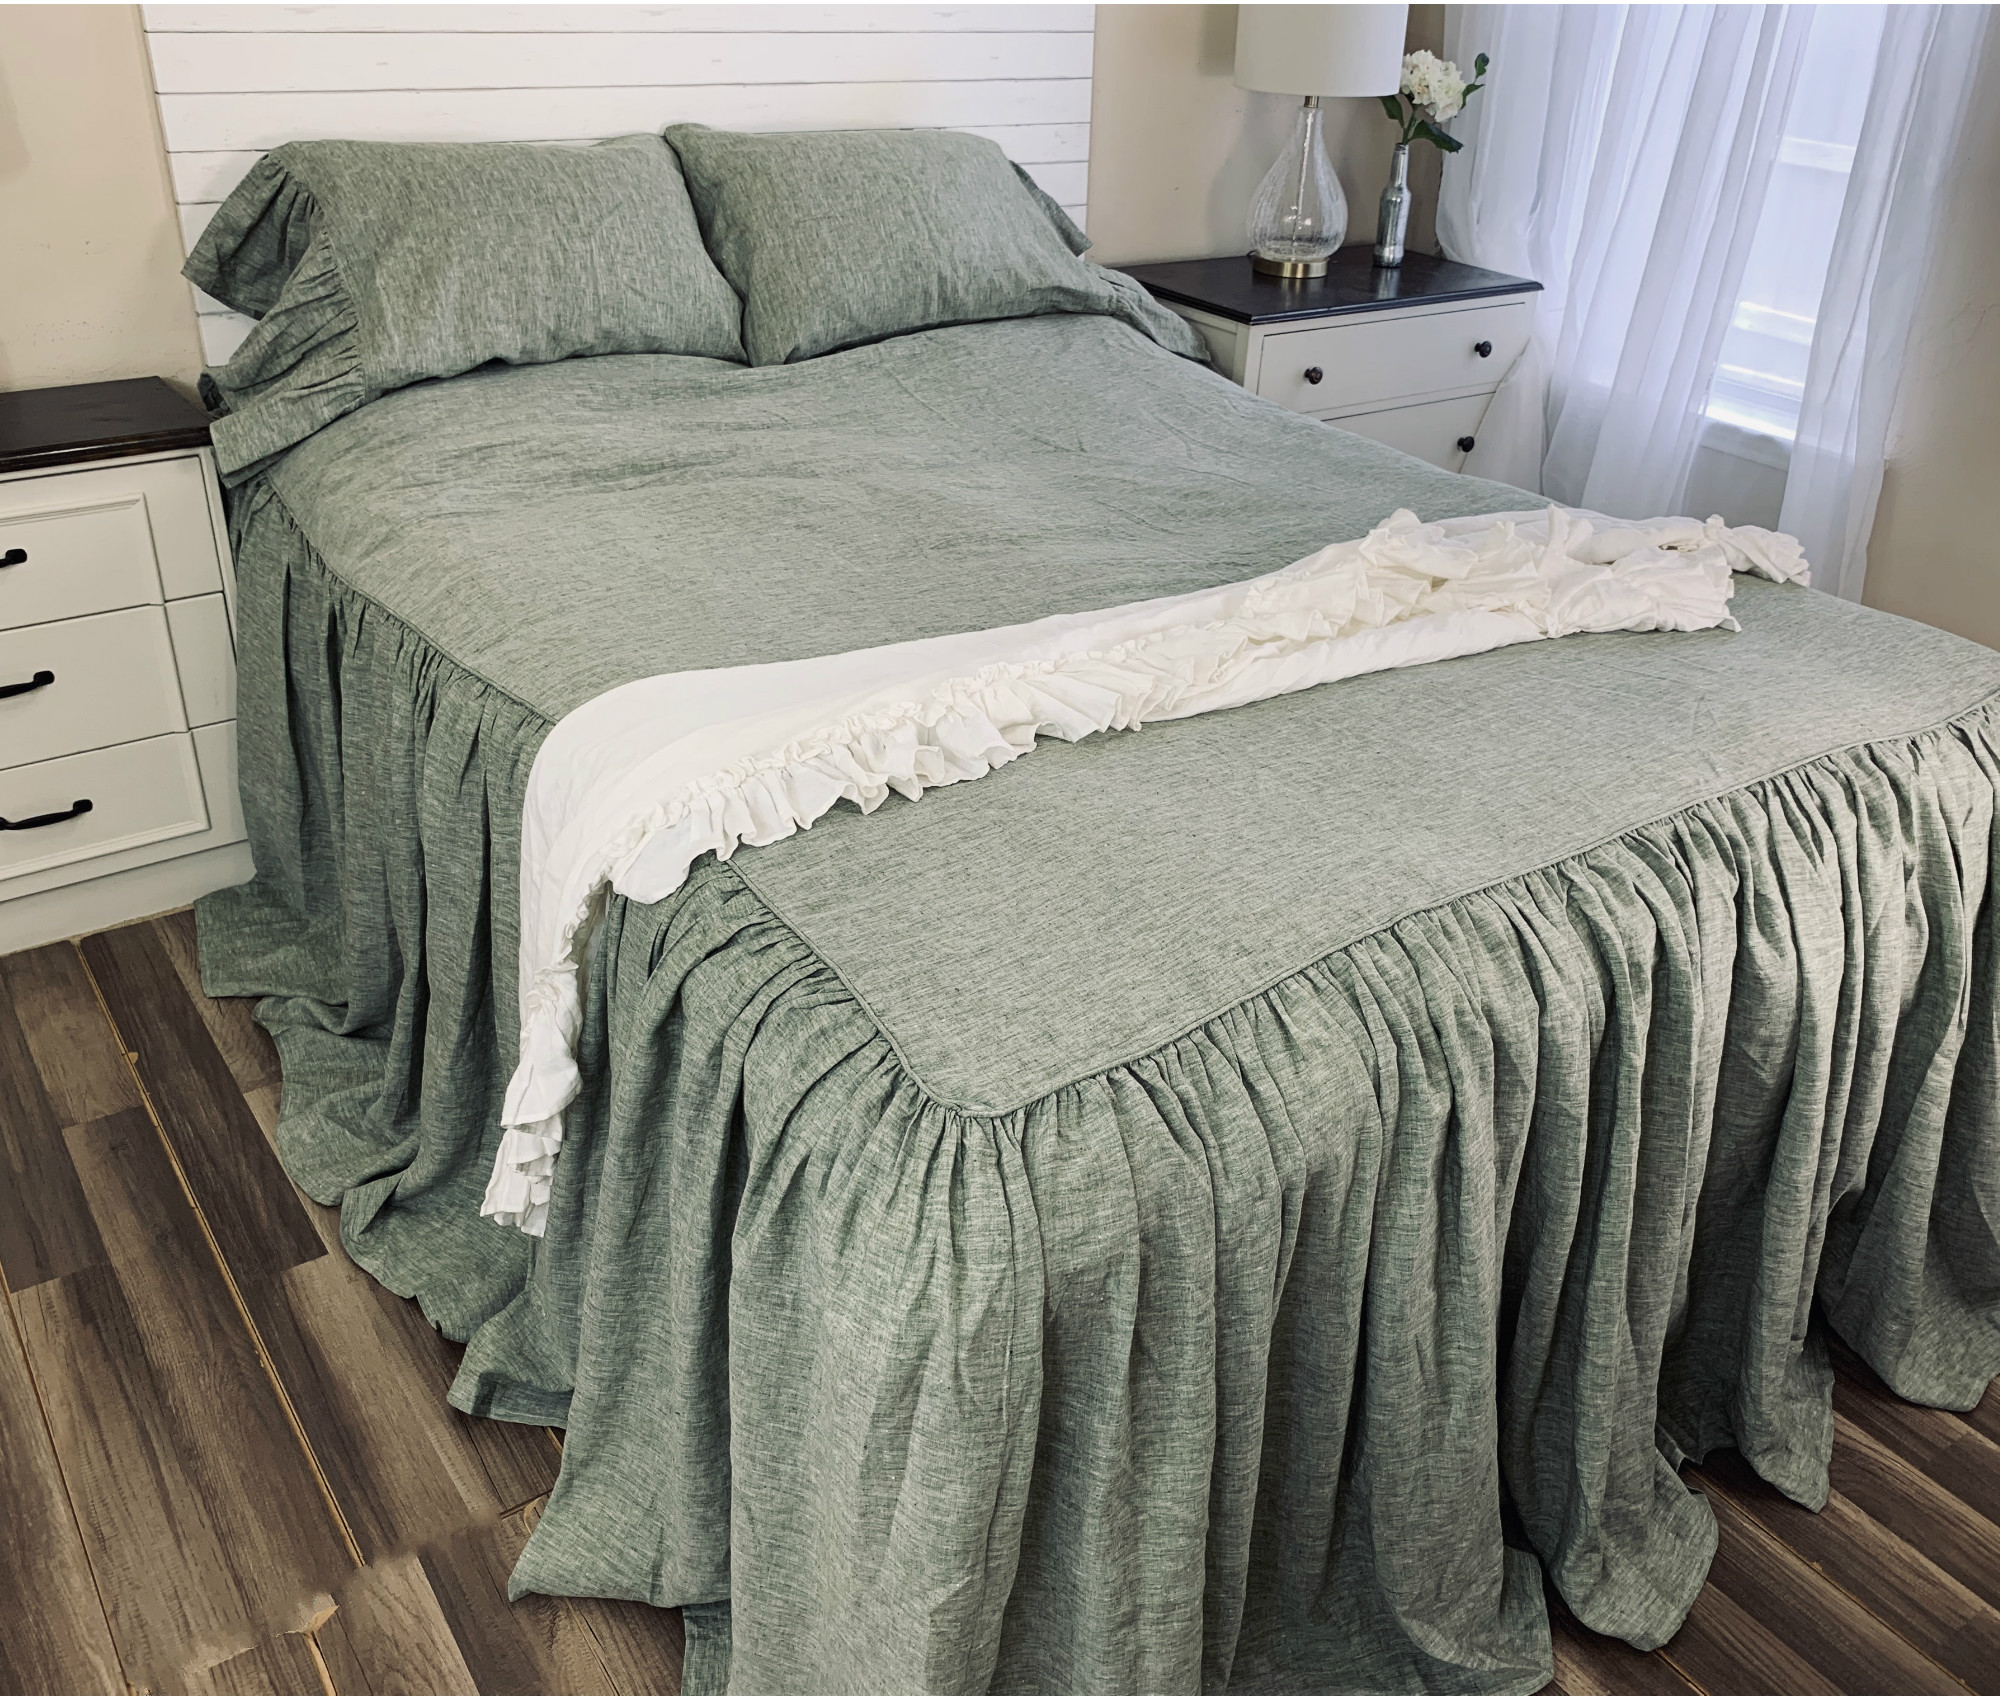 Chambray Olive Green Linen Bedspread Made To Fit All Size Bed